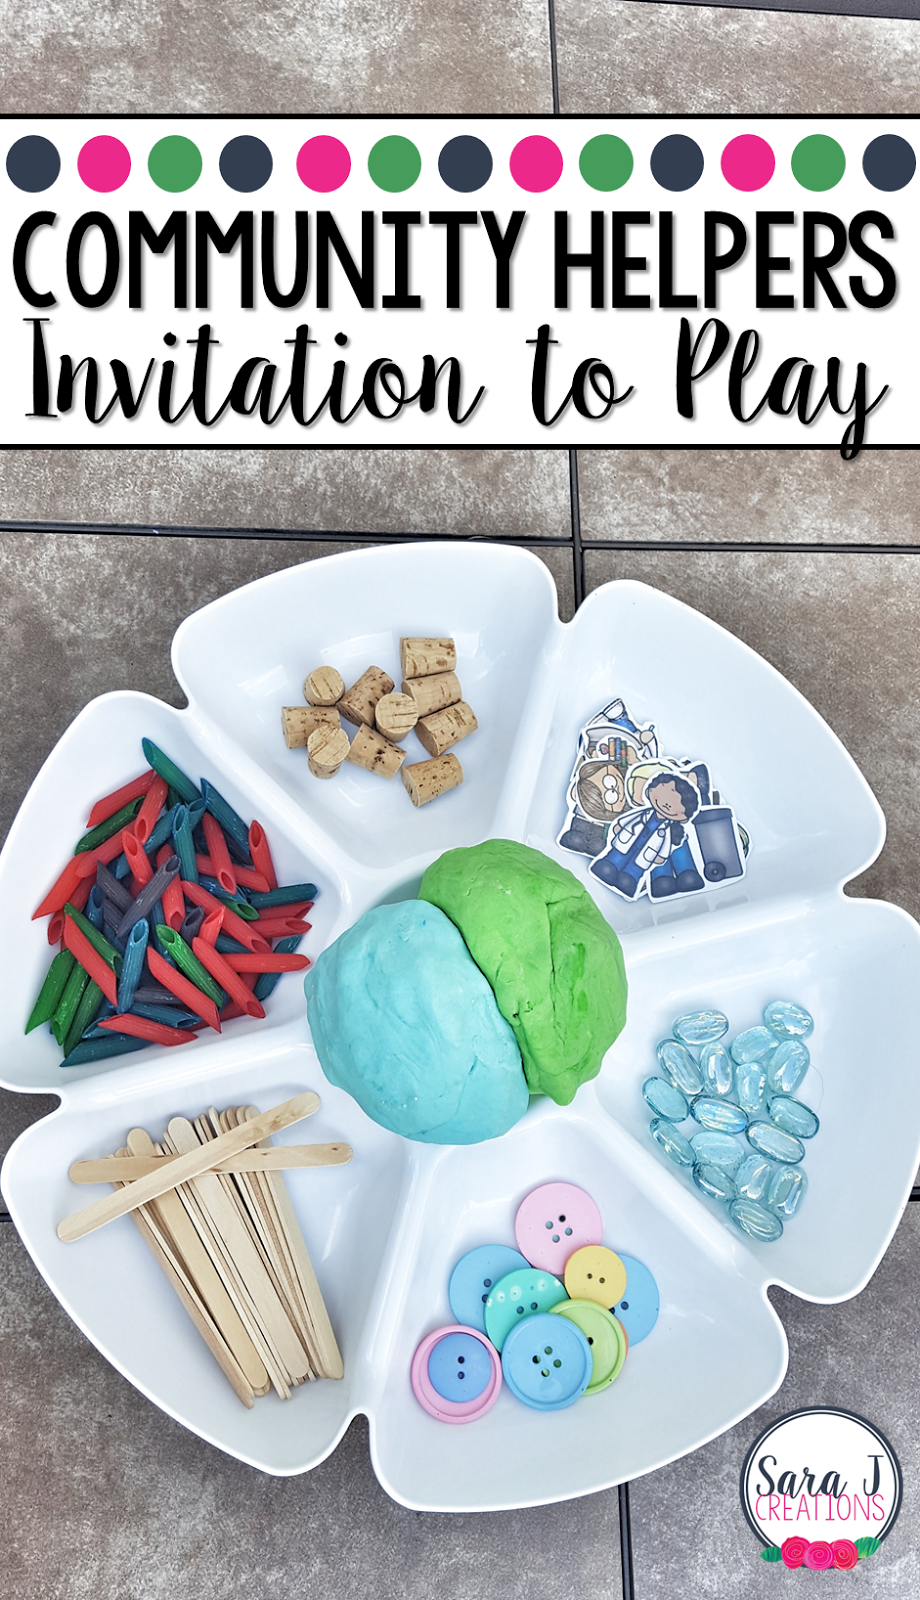 Community helpers invitation to play is a fun open ended activity for preschoolers to explore and create.